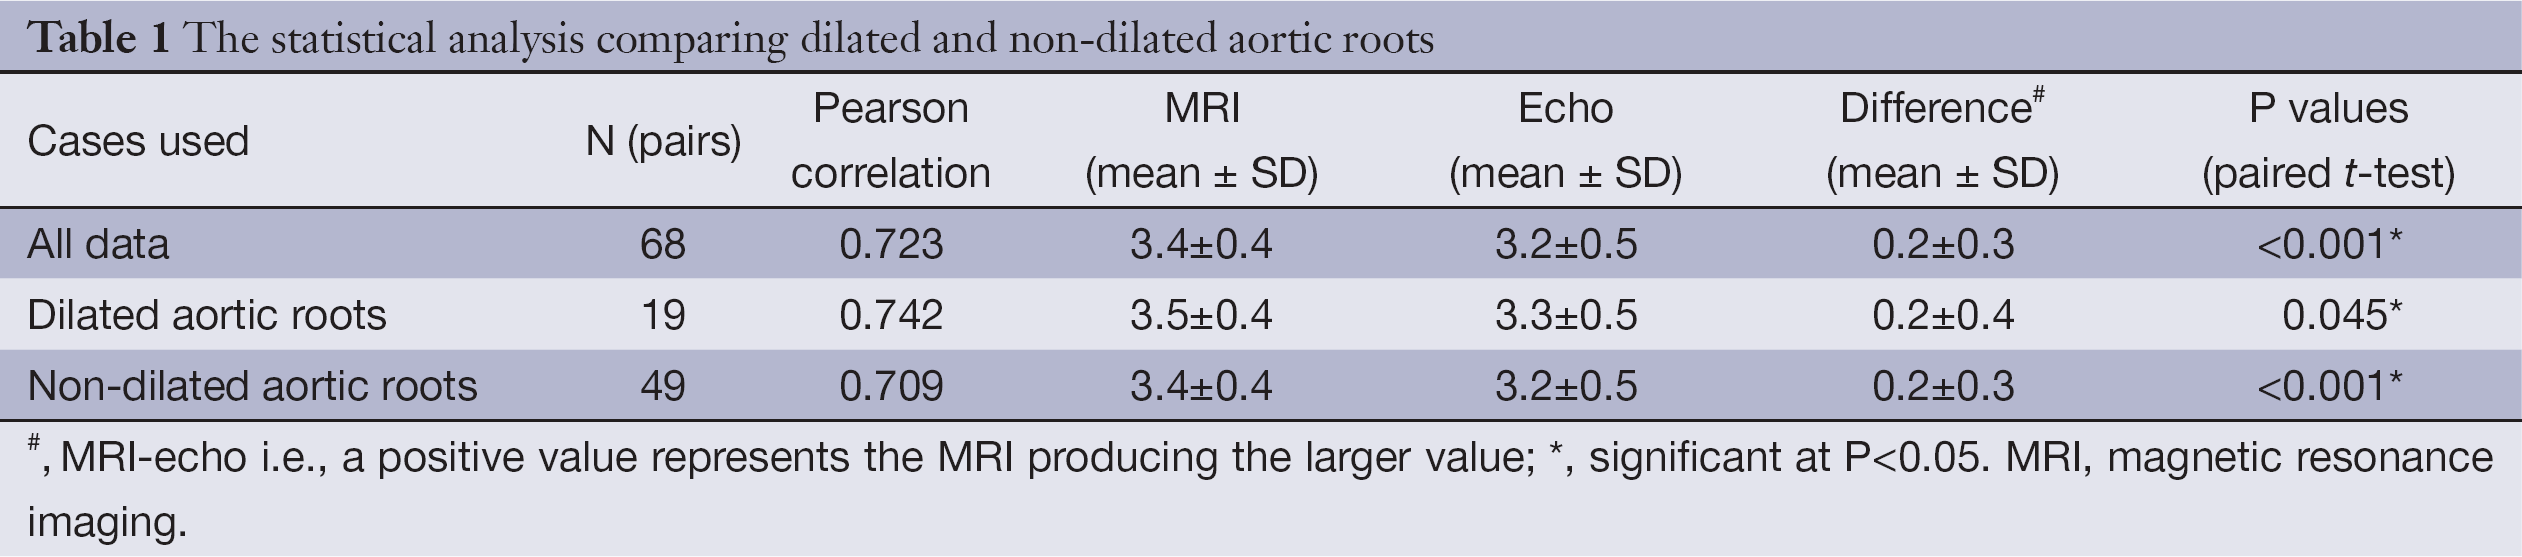 Aortic Root Size Chart